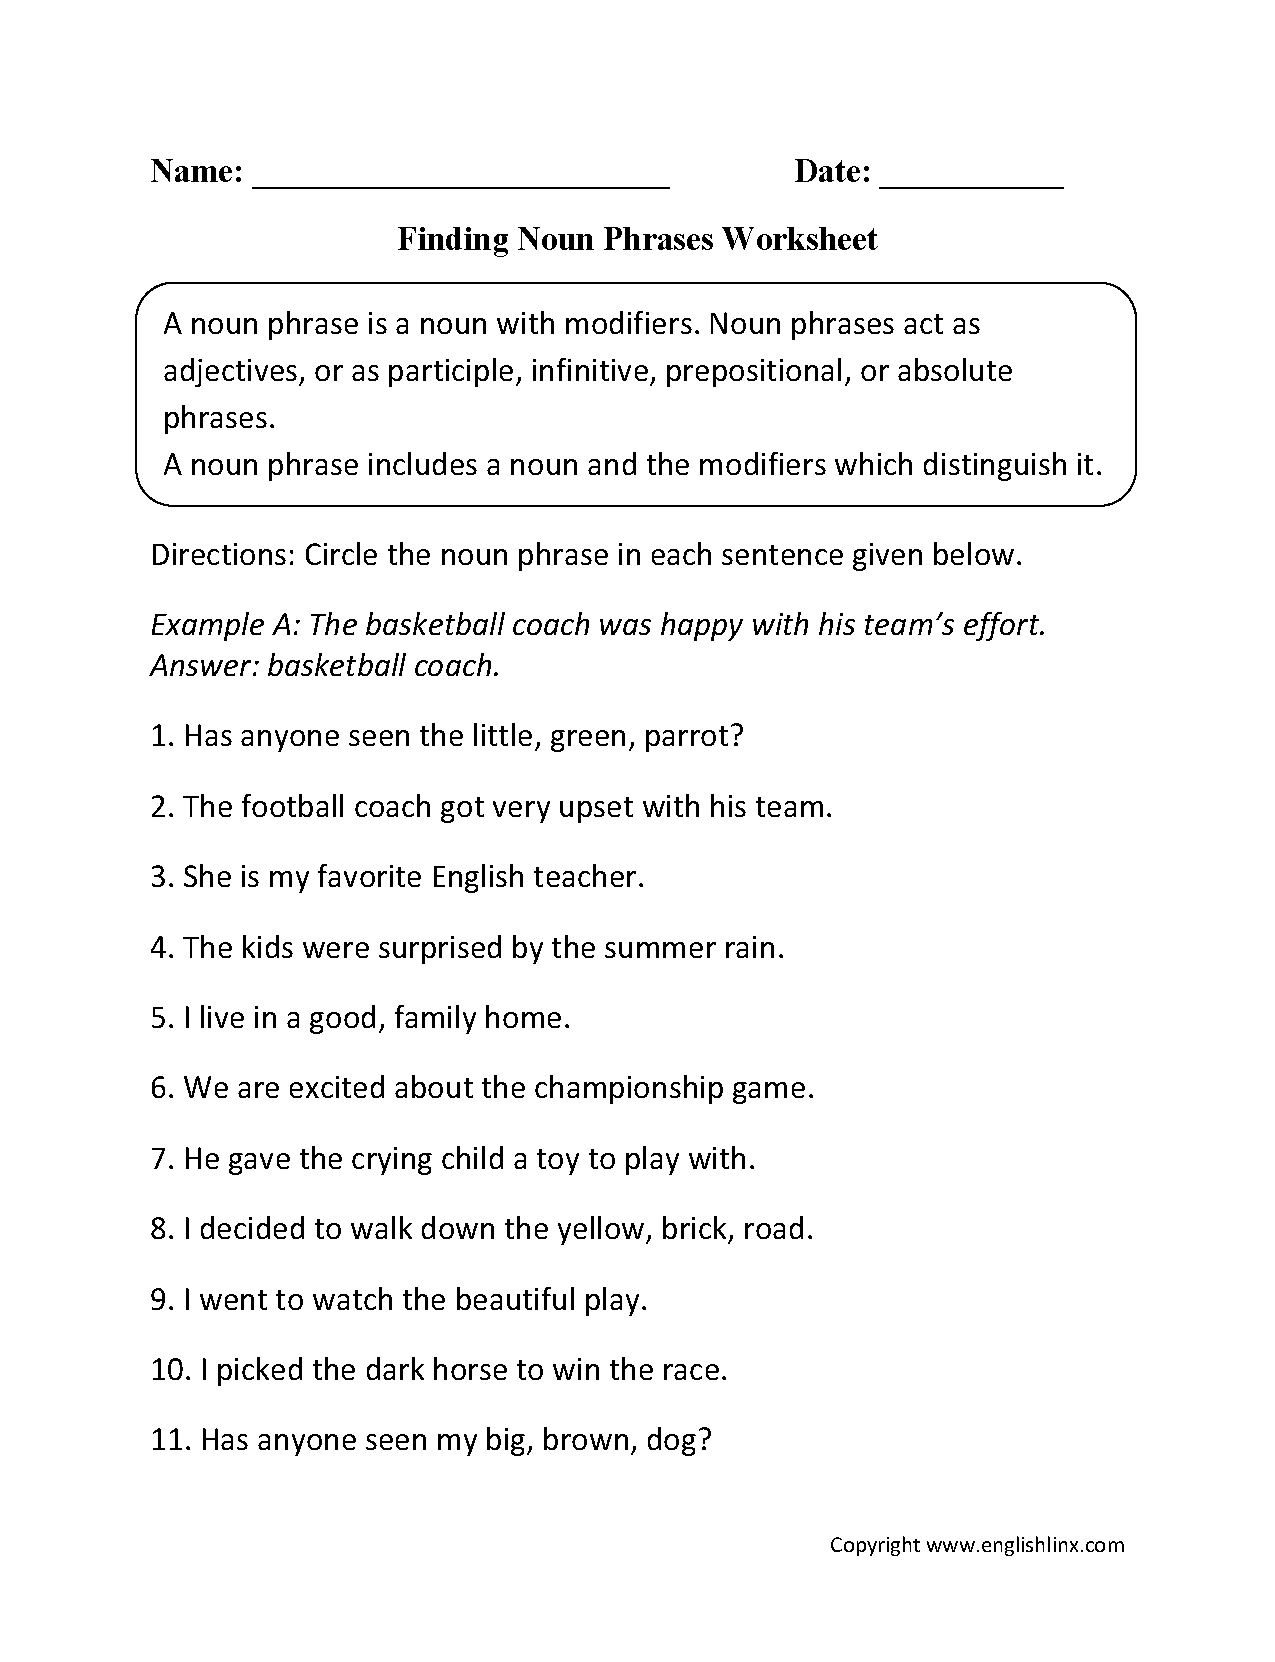 Worksheet Identifying Nouns nouns worksheets noun phrases worksheets